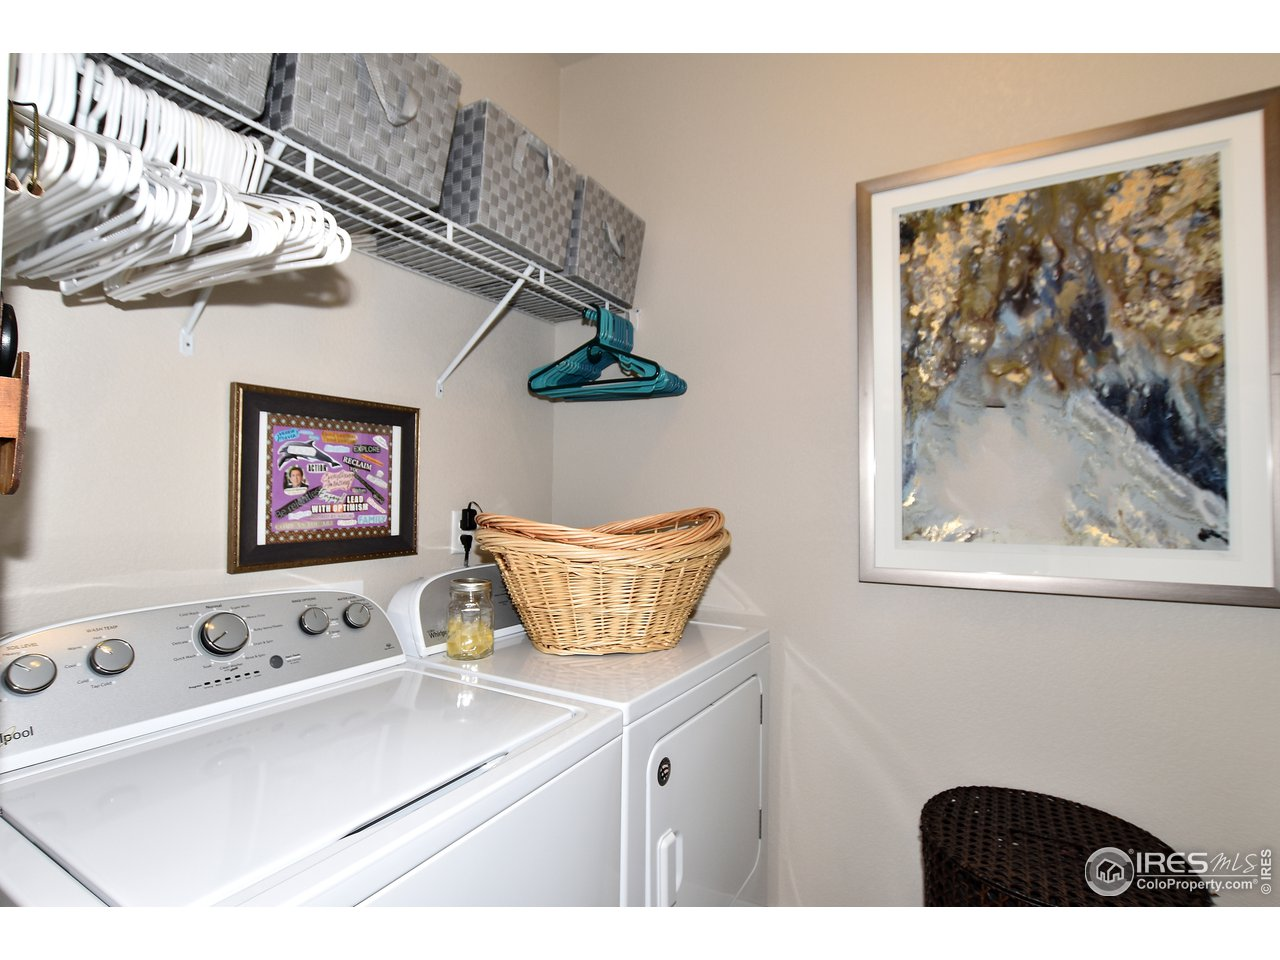 Oversized laundry in unit includes washer/dryer! Unit has tankless water heater also!